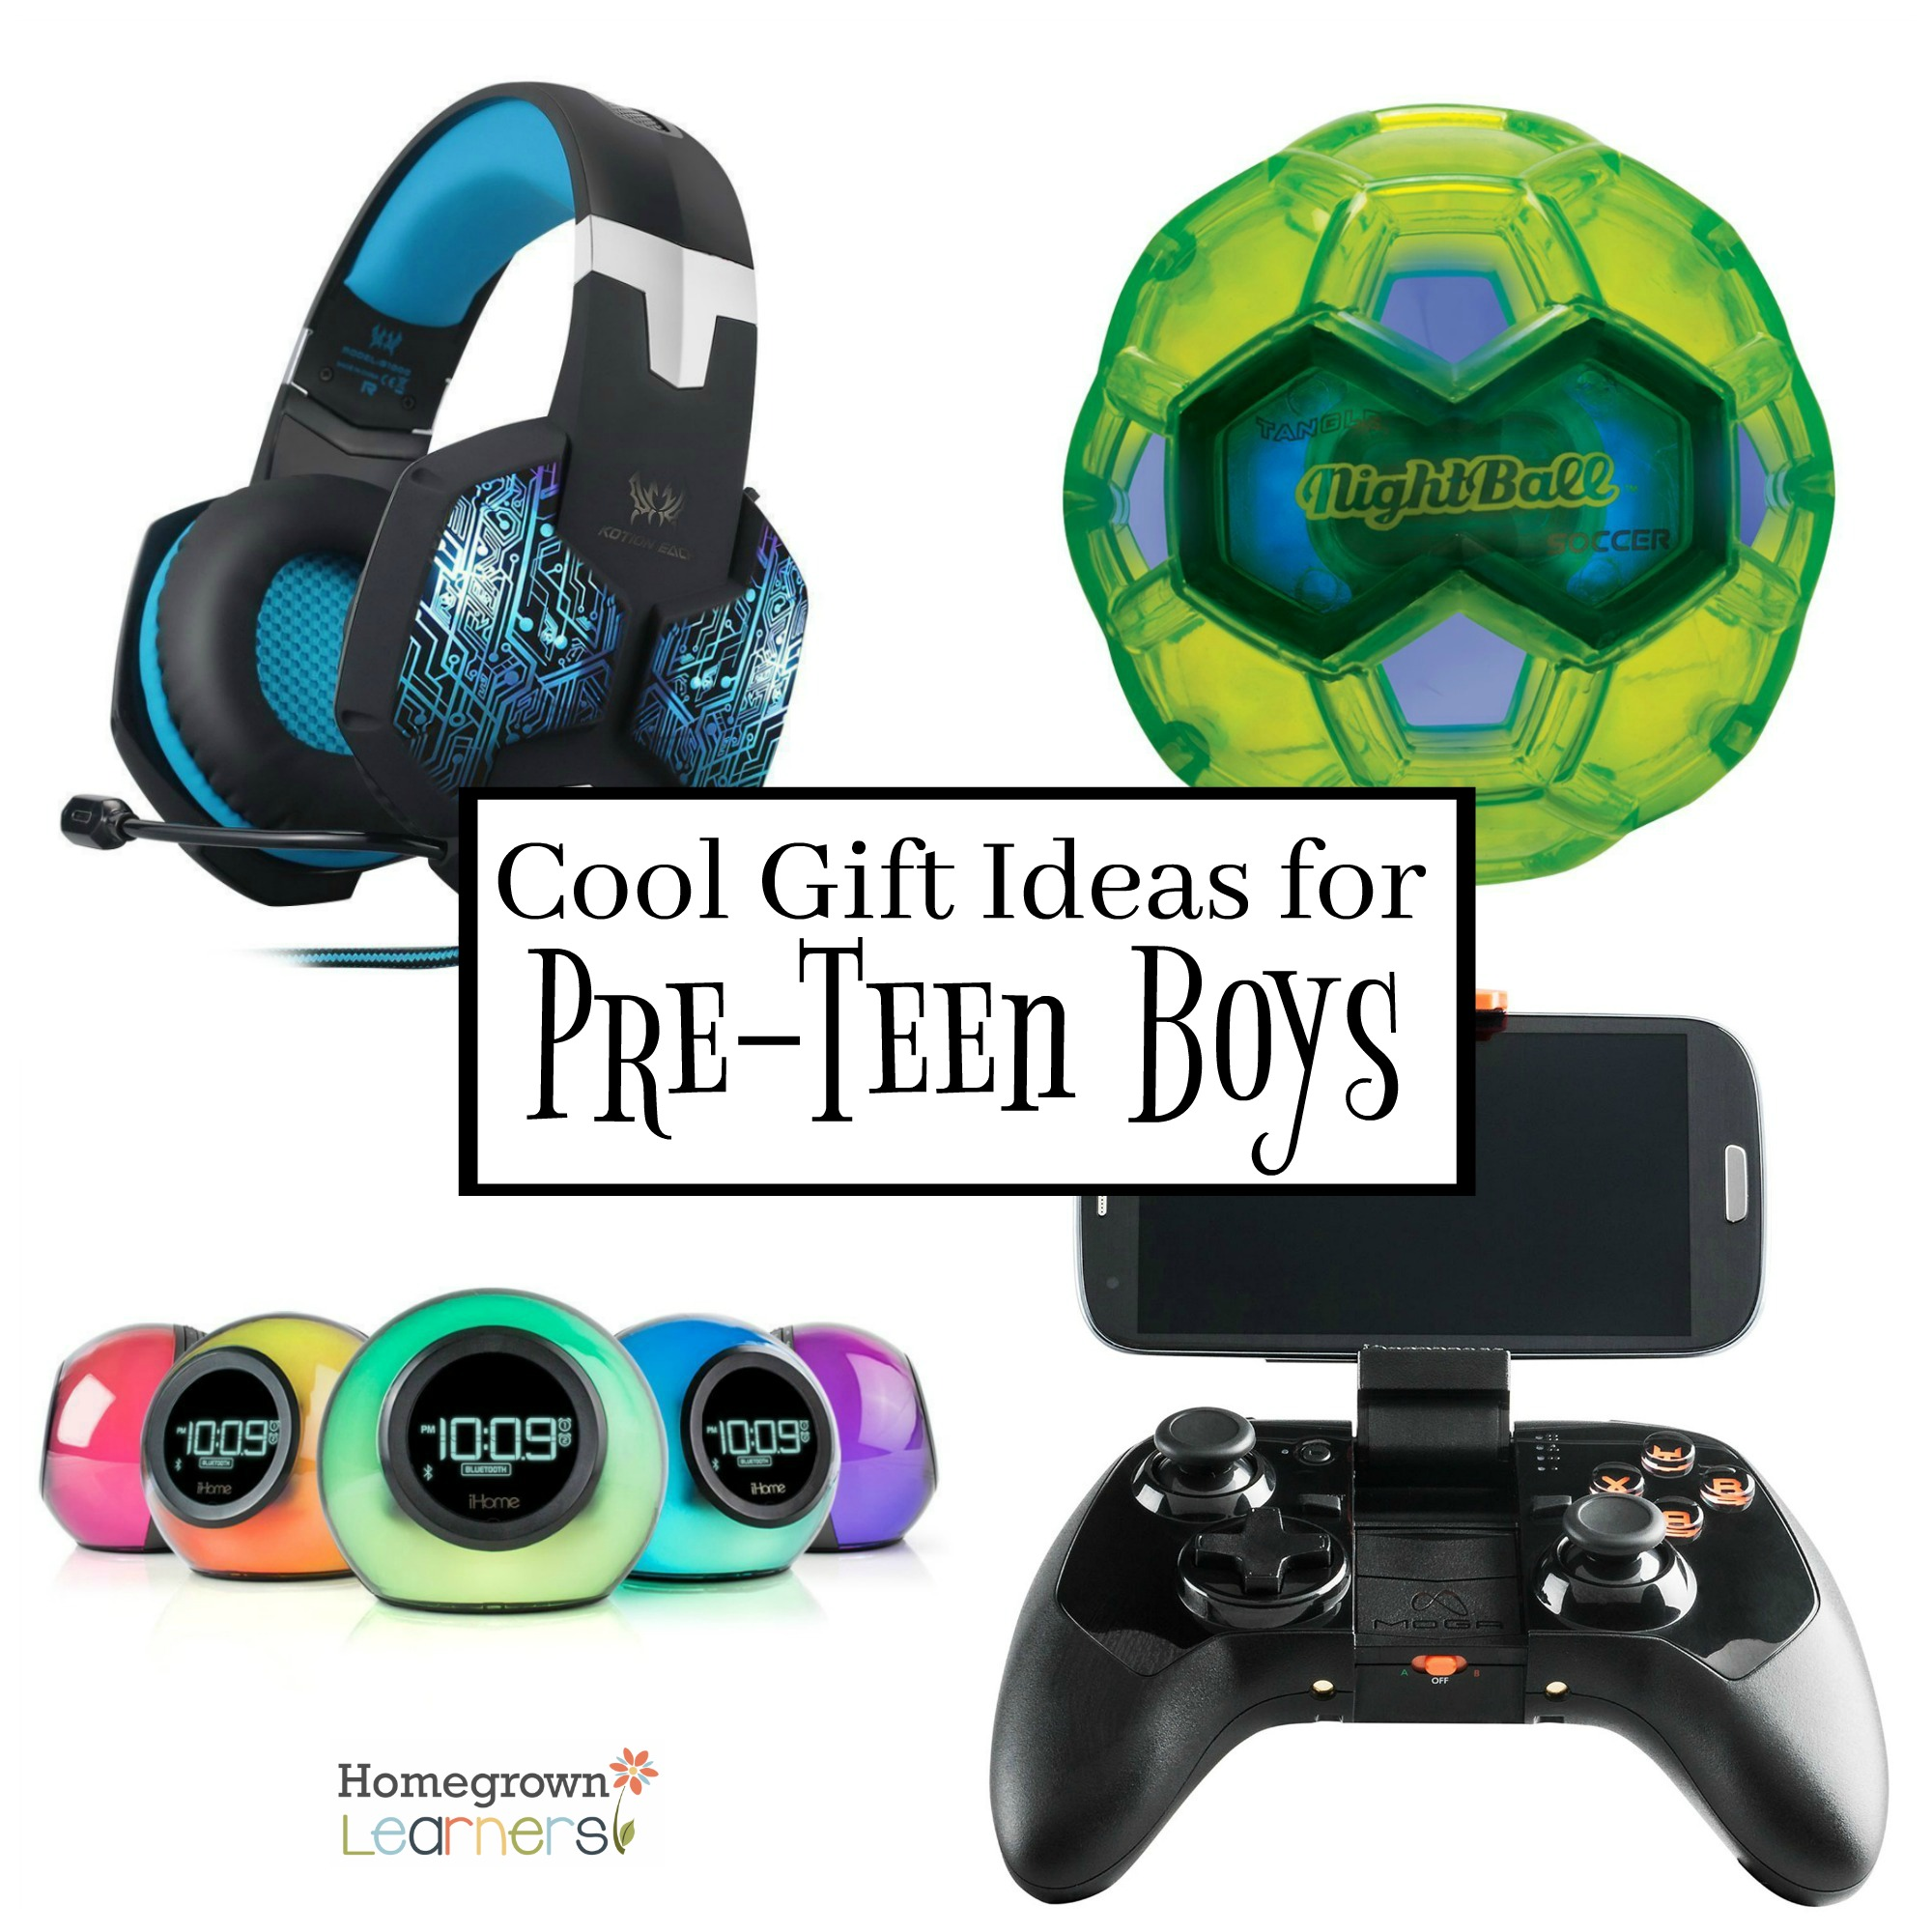 Cool Gift Ideas for PreTeen Boys  Homegrown Learners